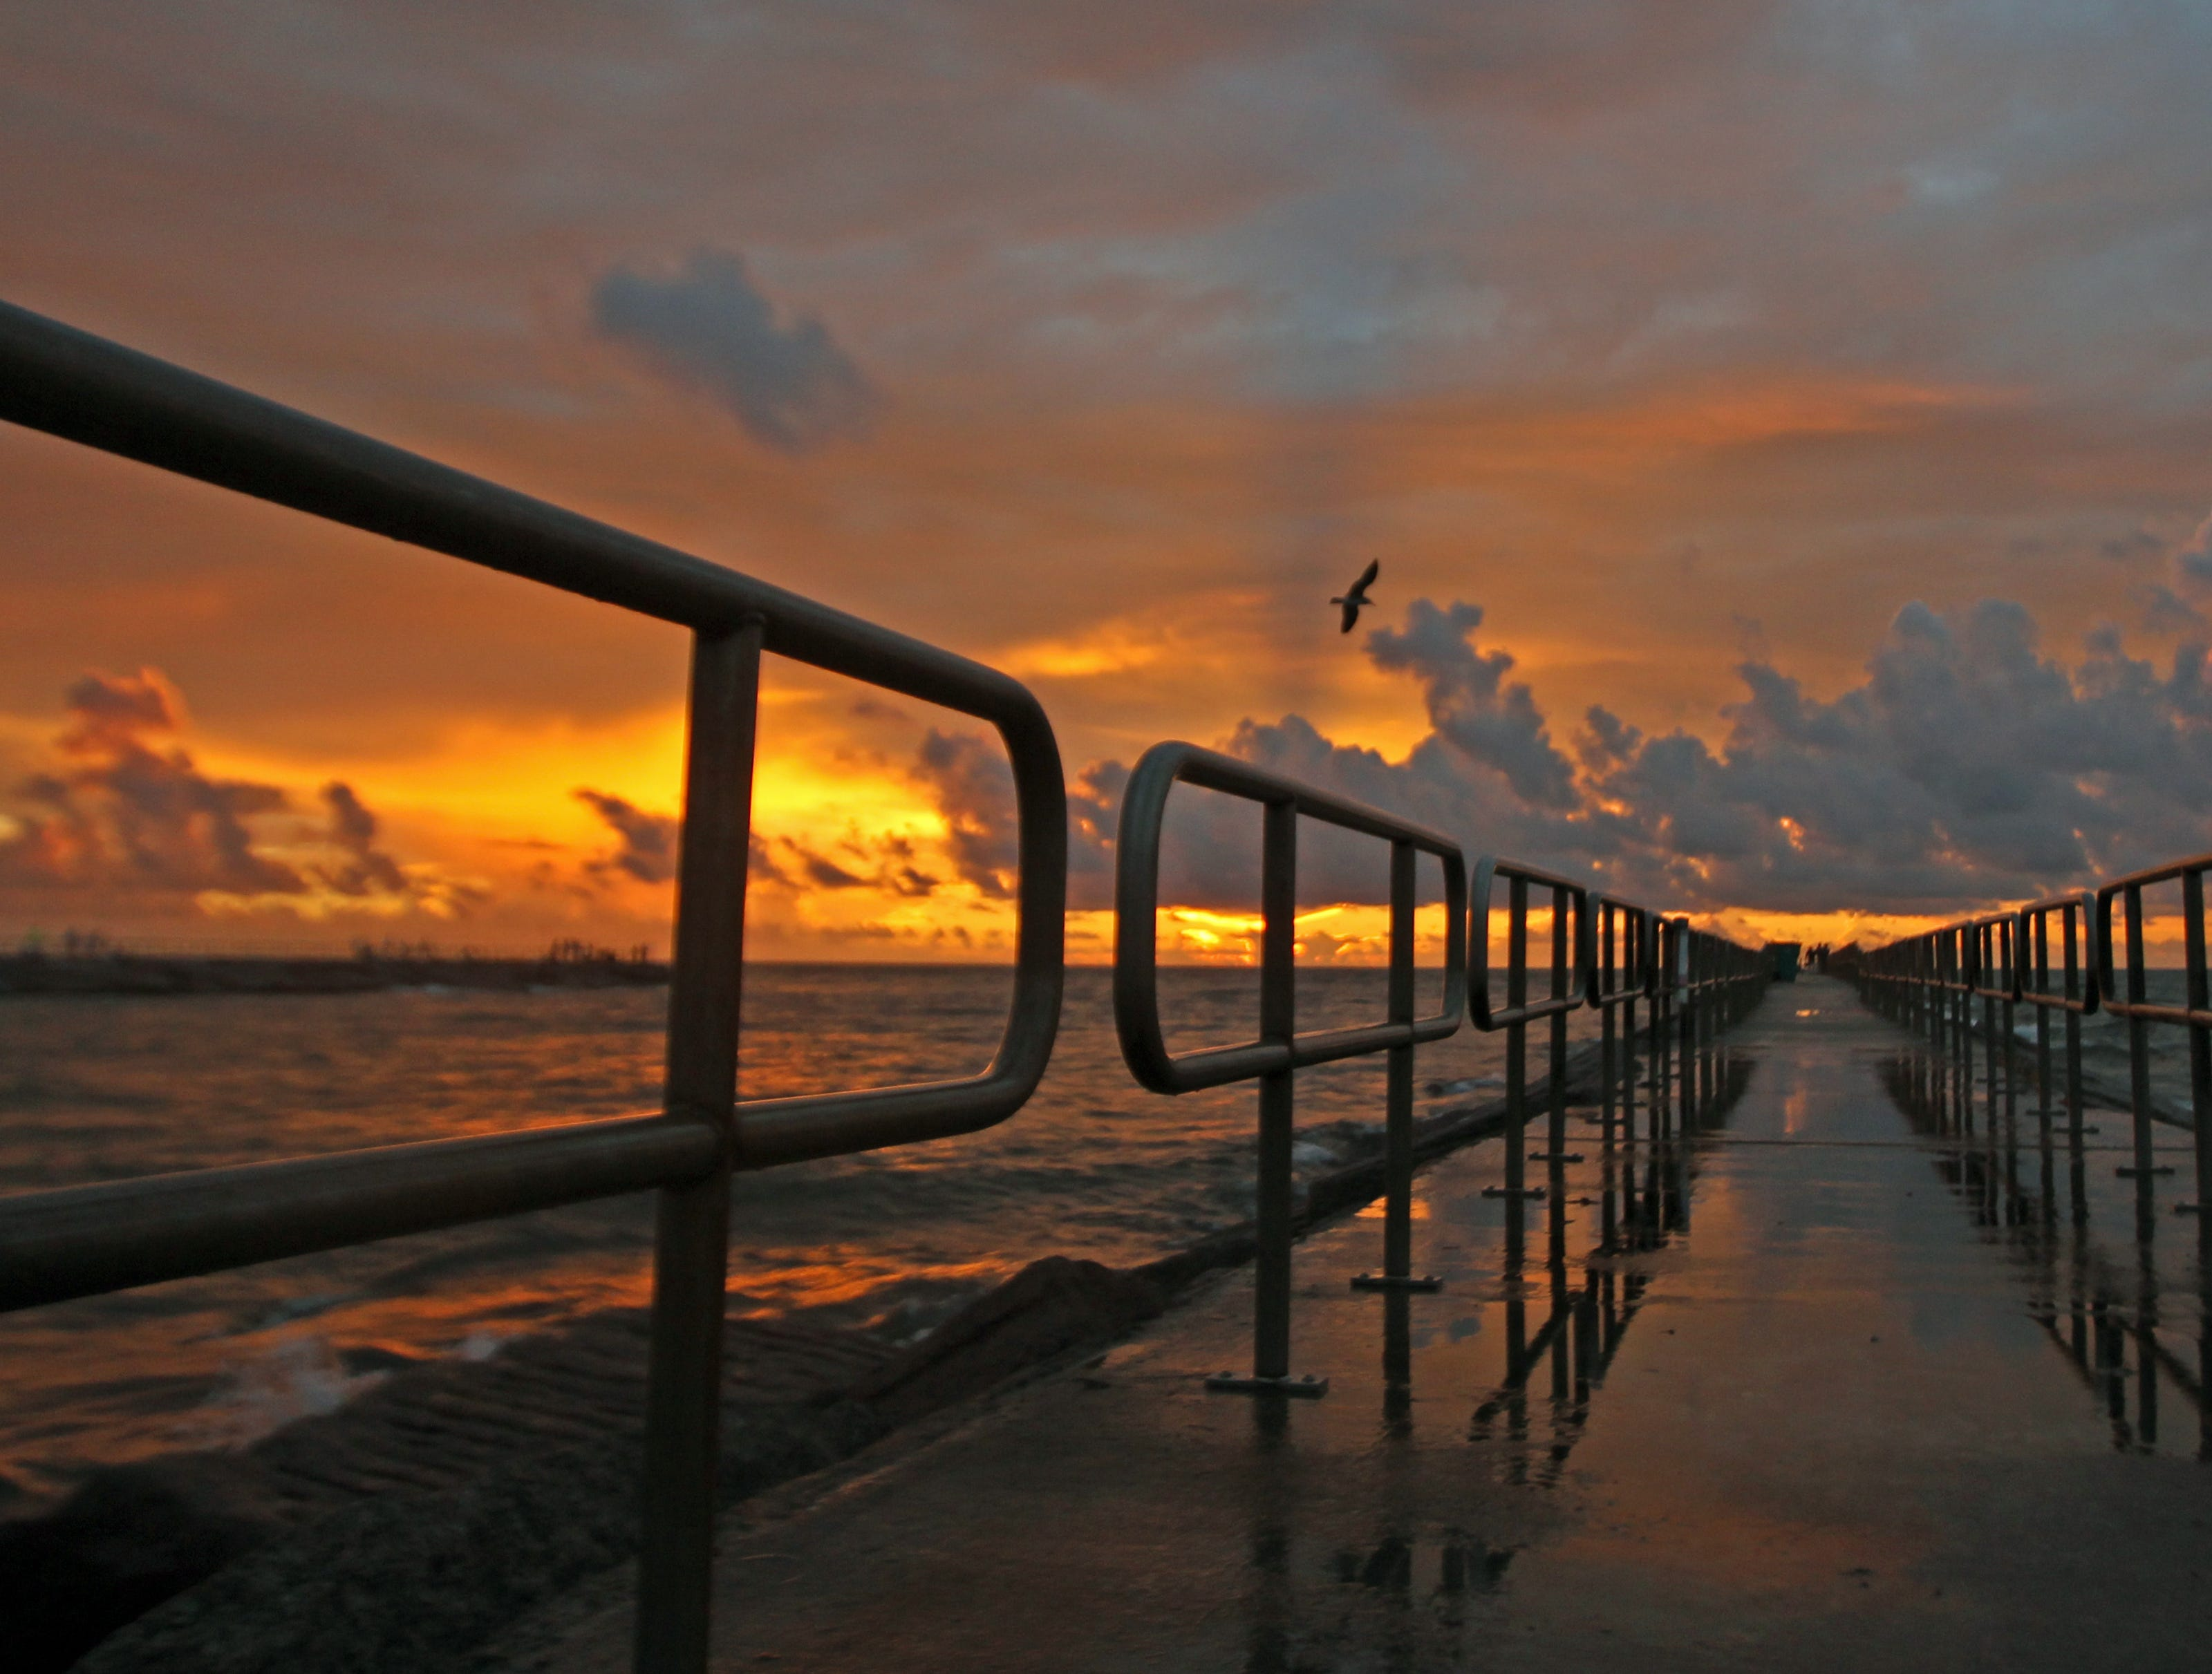 A recent spectacular sunrise at the south Packery jetty.